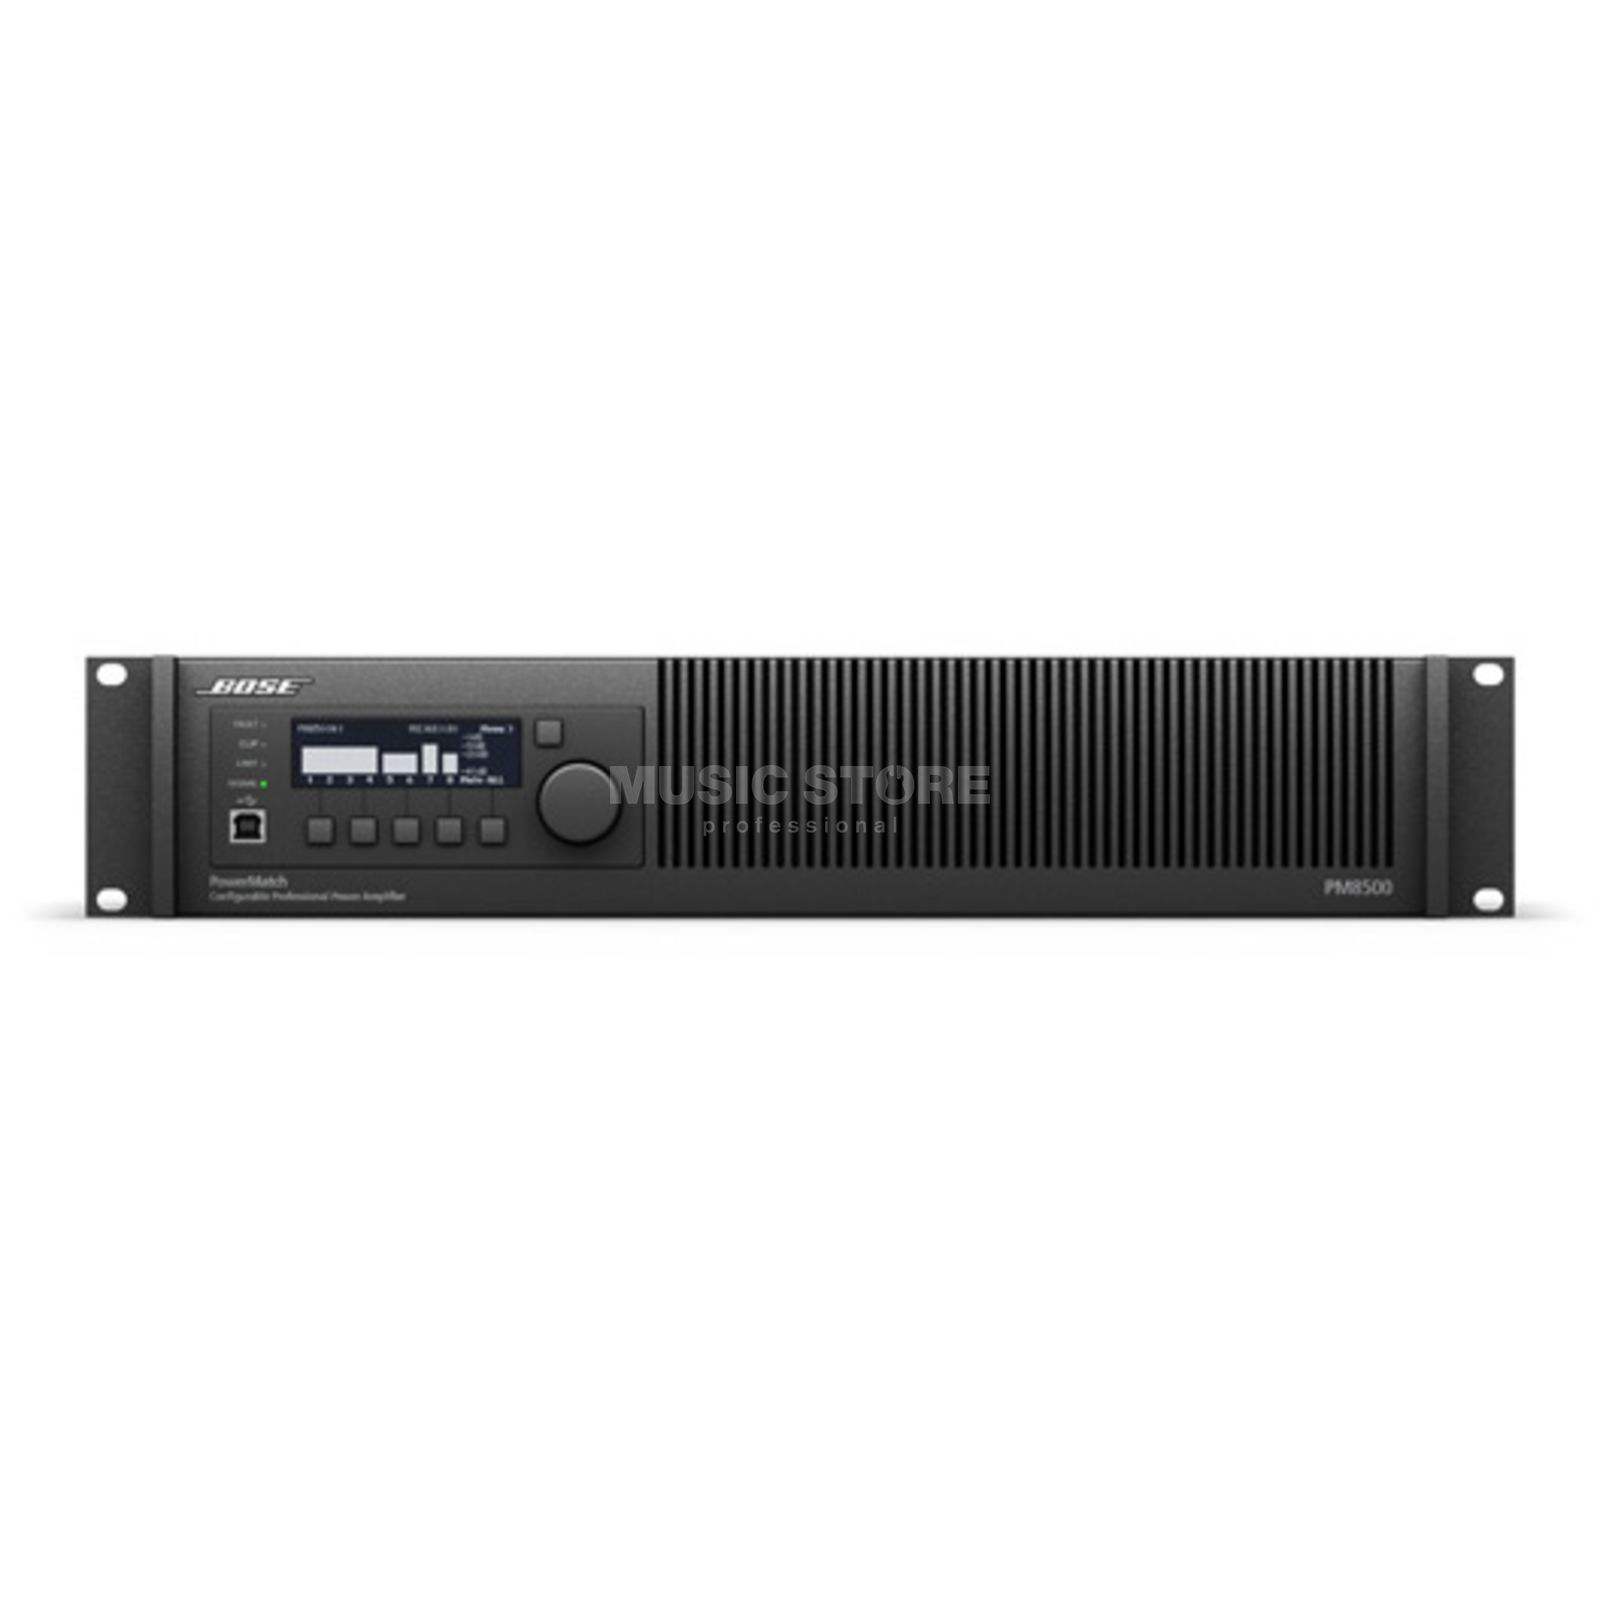 Bose PowerMatch PM8500 Amp config. Power Amp. 8Ch 4000W Produktbillede